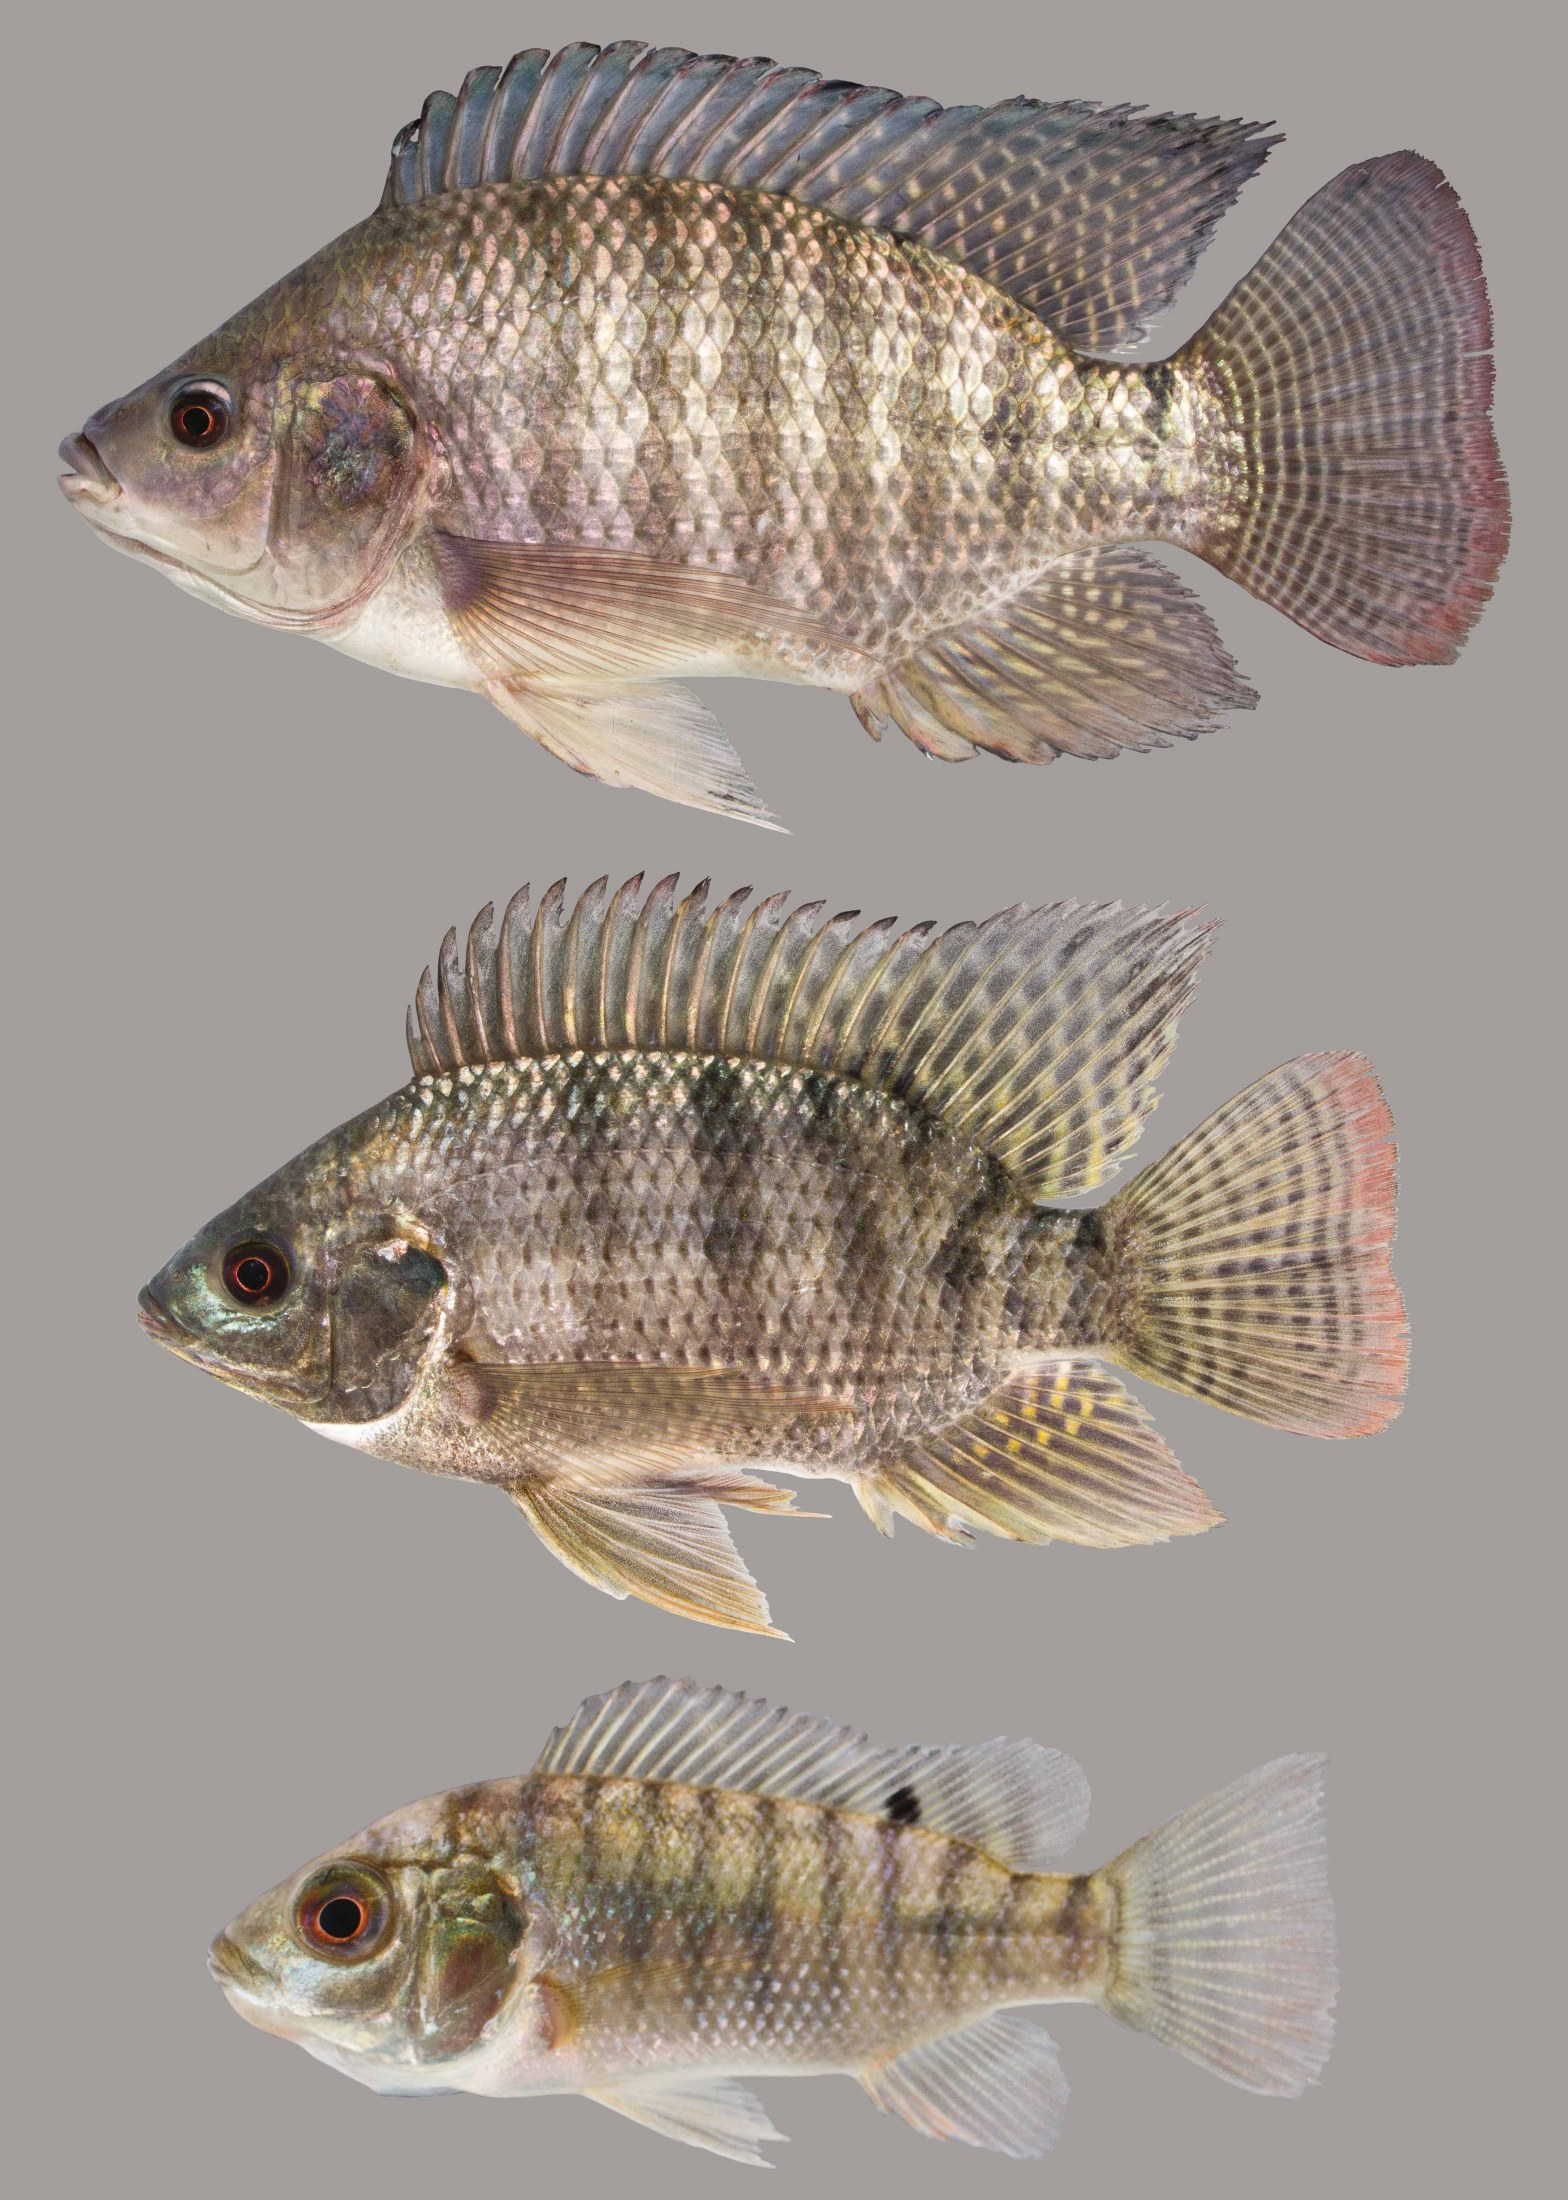 Lateral view of Nile tilapia